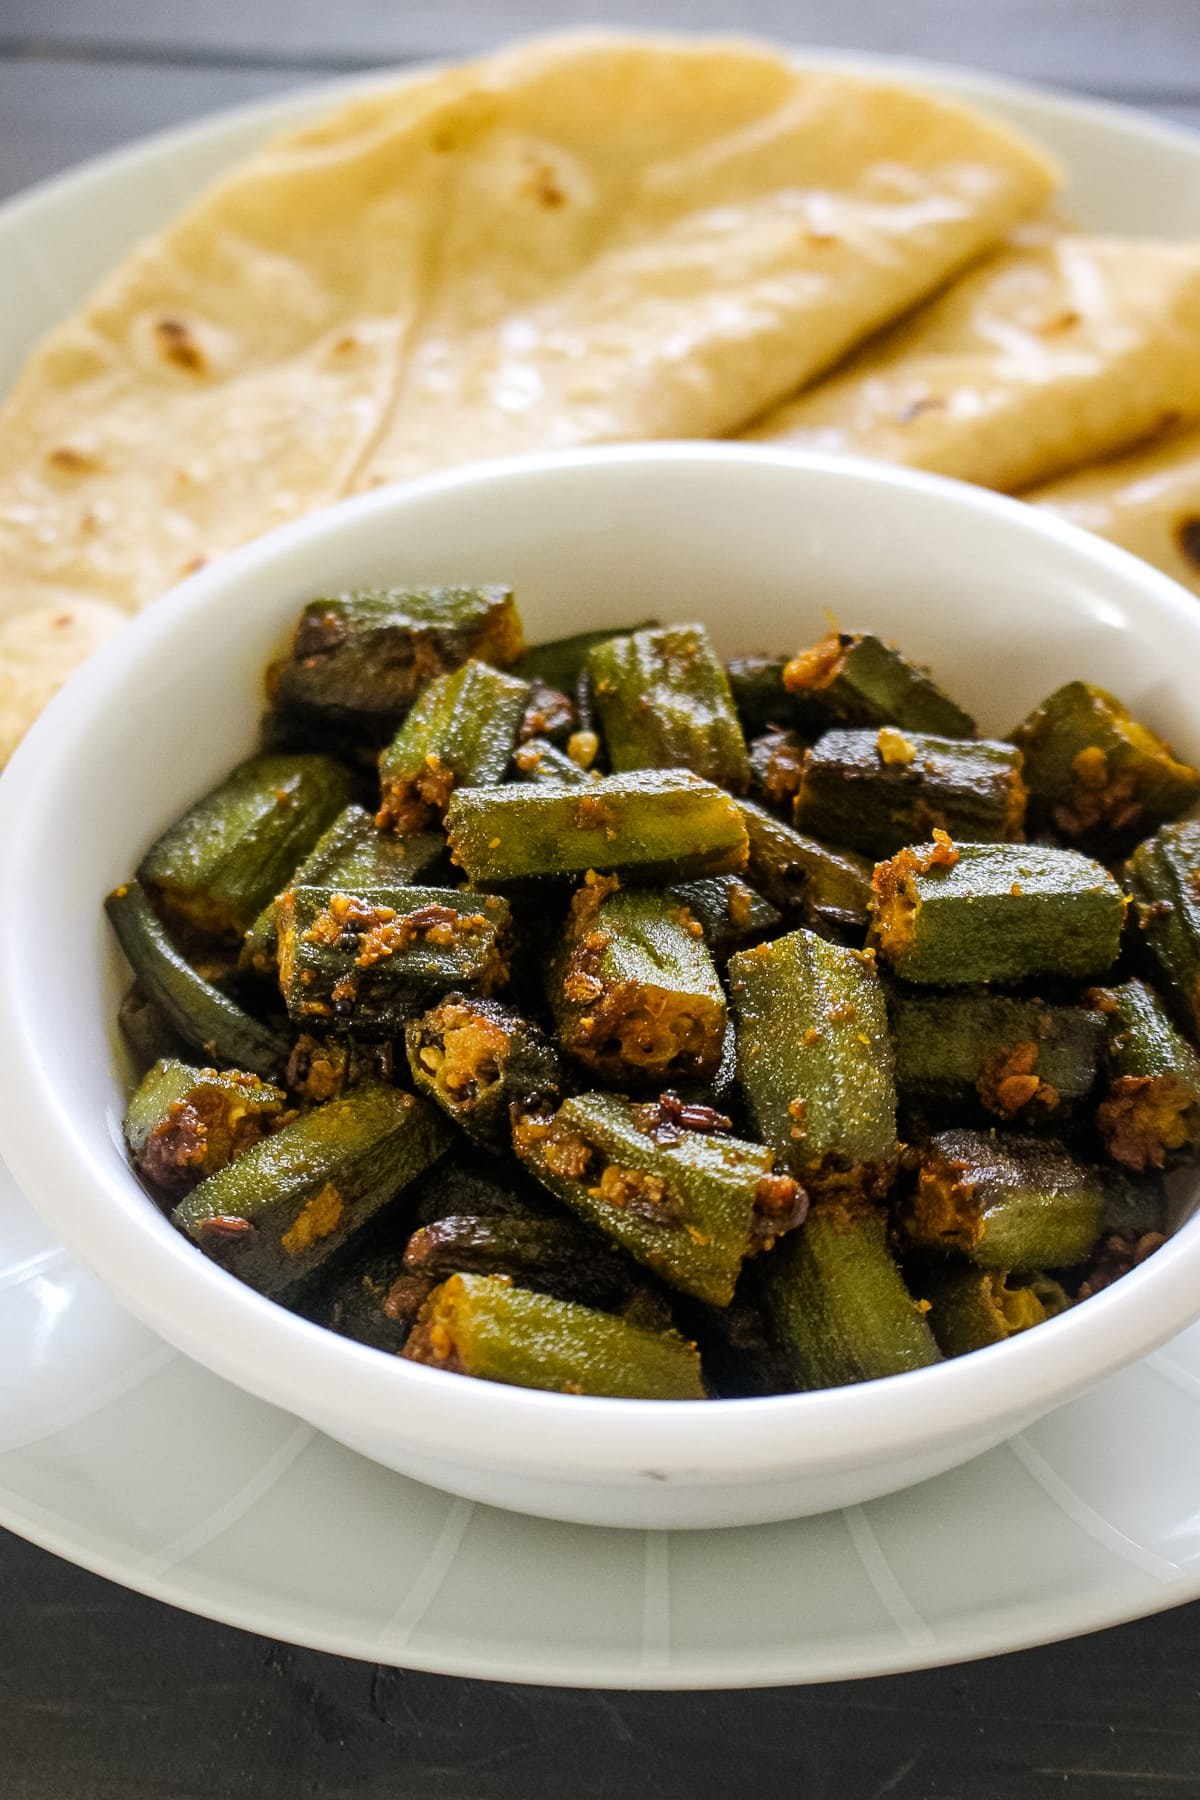 Close up of achari bhindi served with roti.